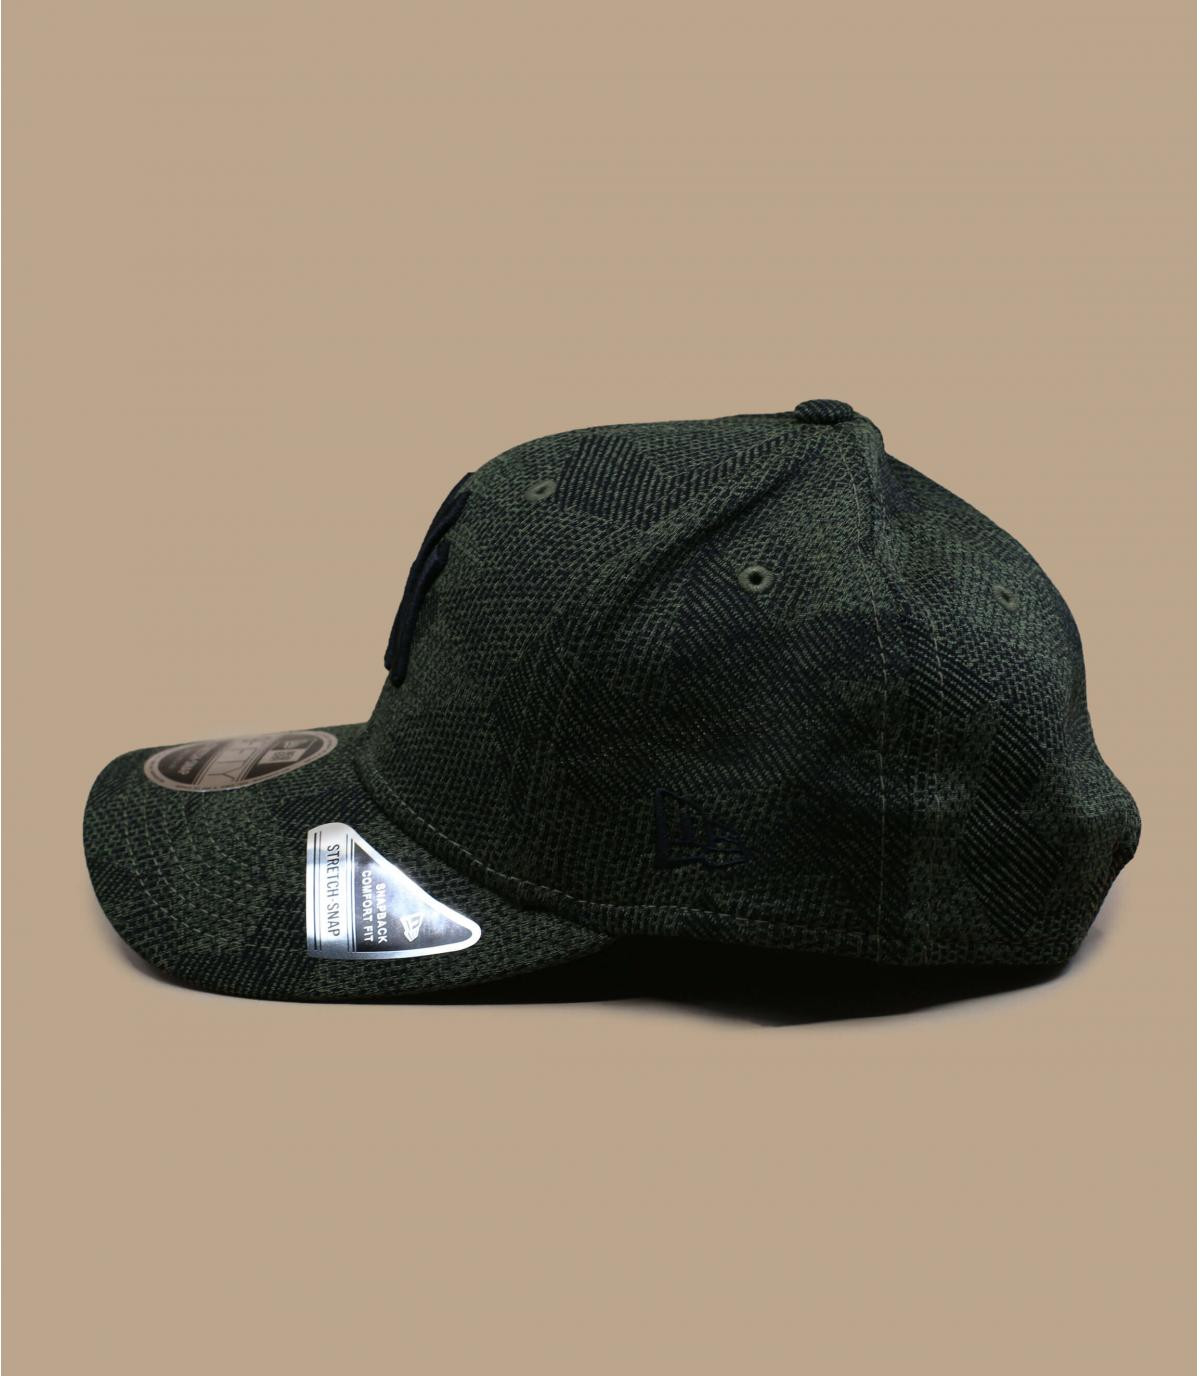 Détails Snapback Engineered Fit Stretch Snap NY 950 olive - image 3